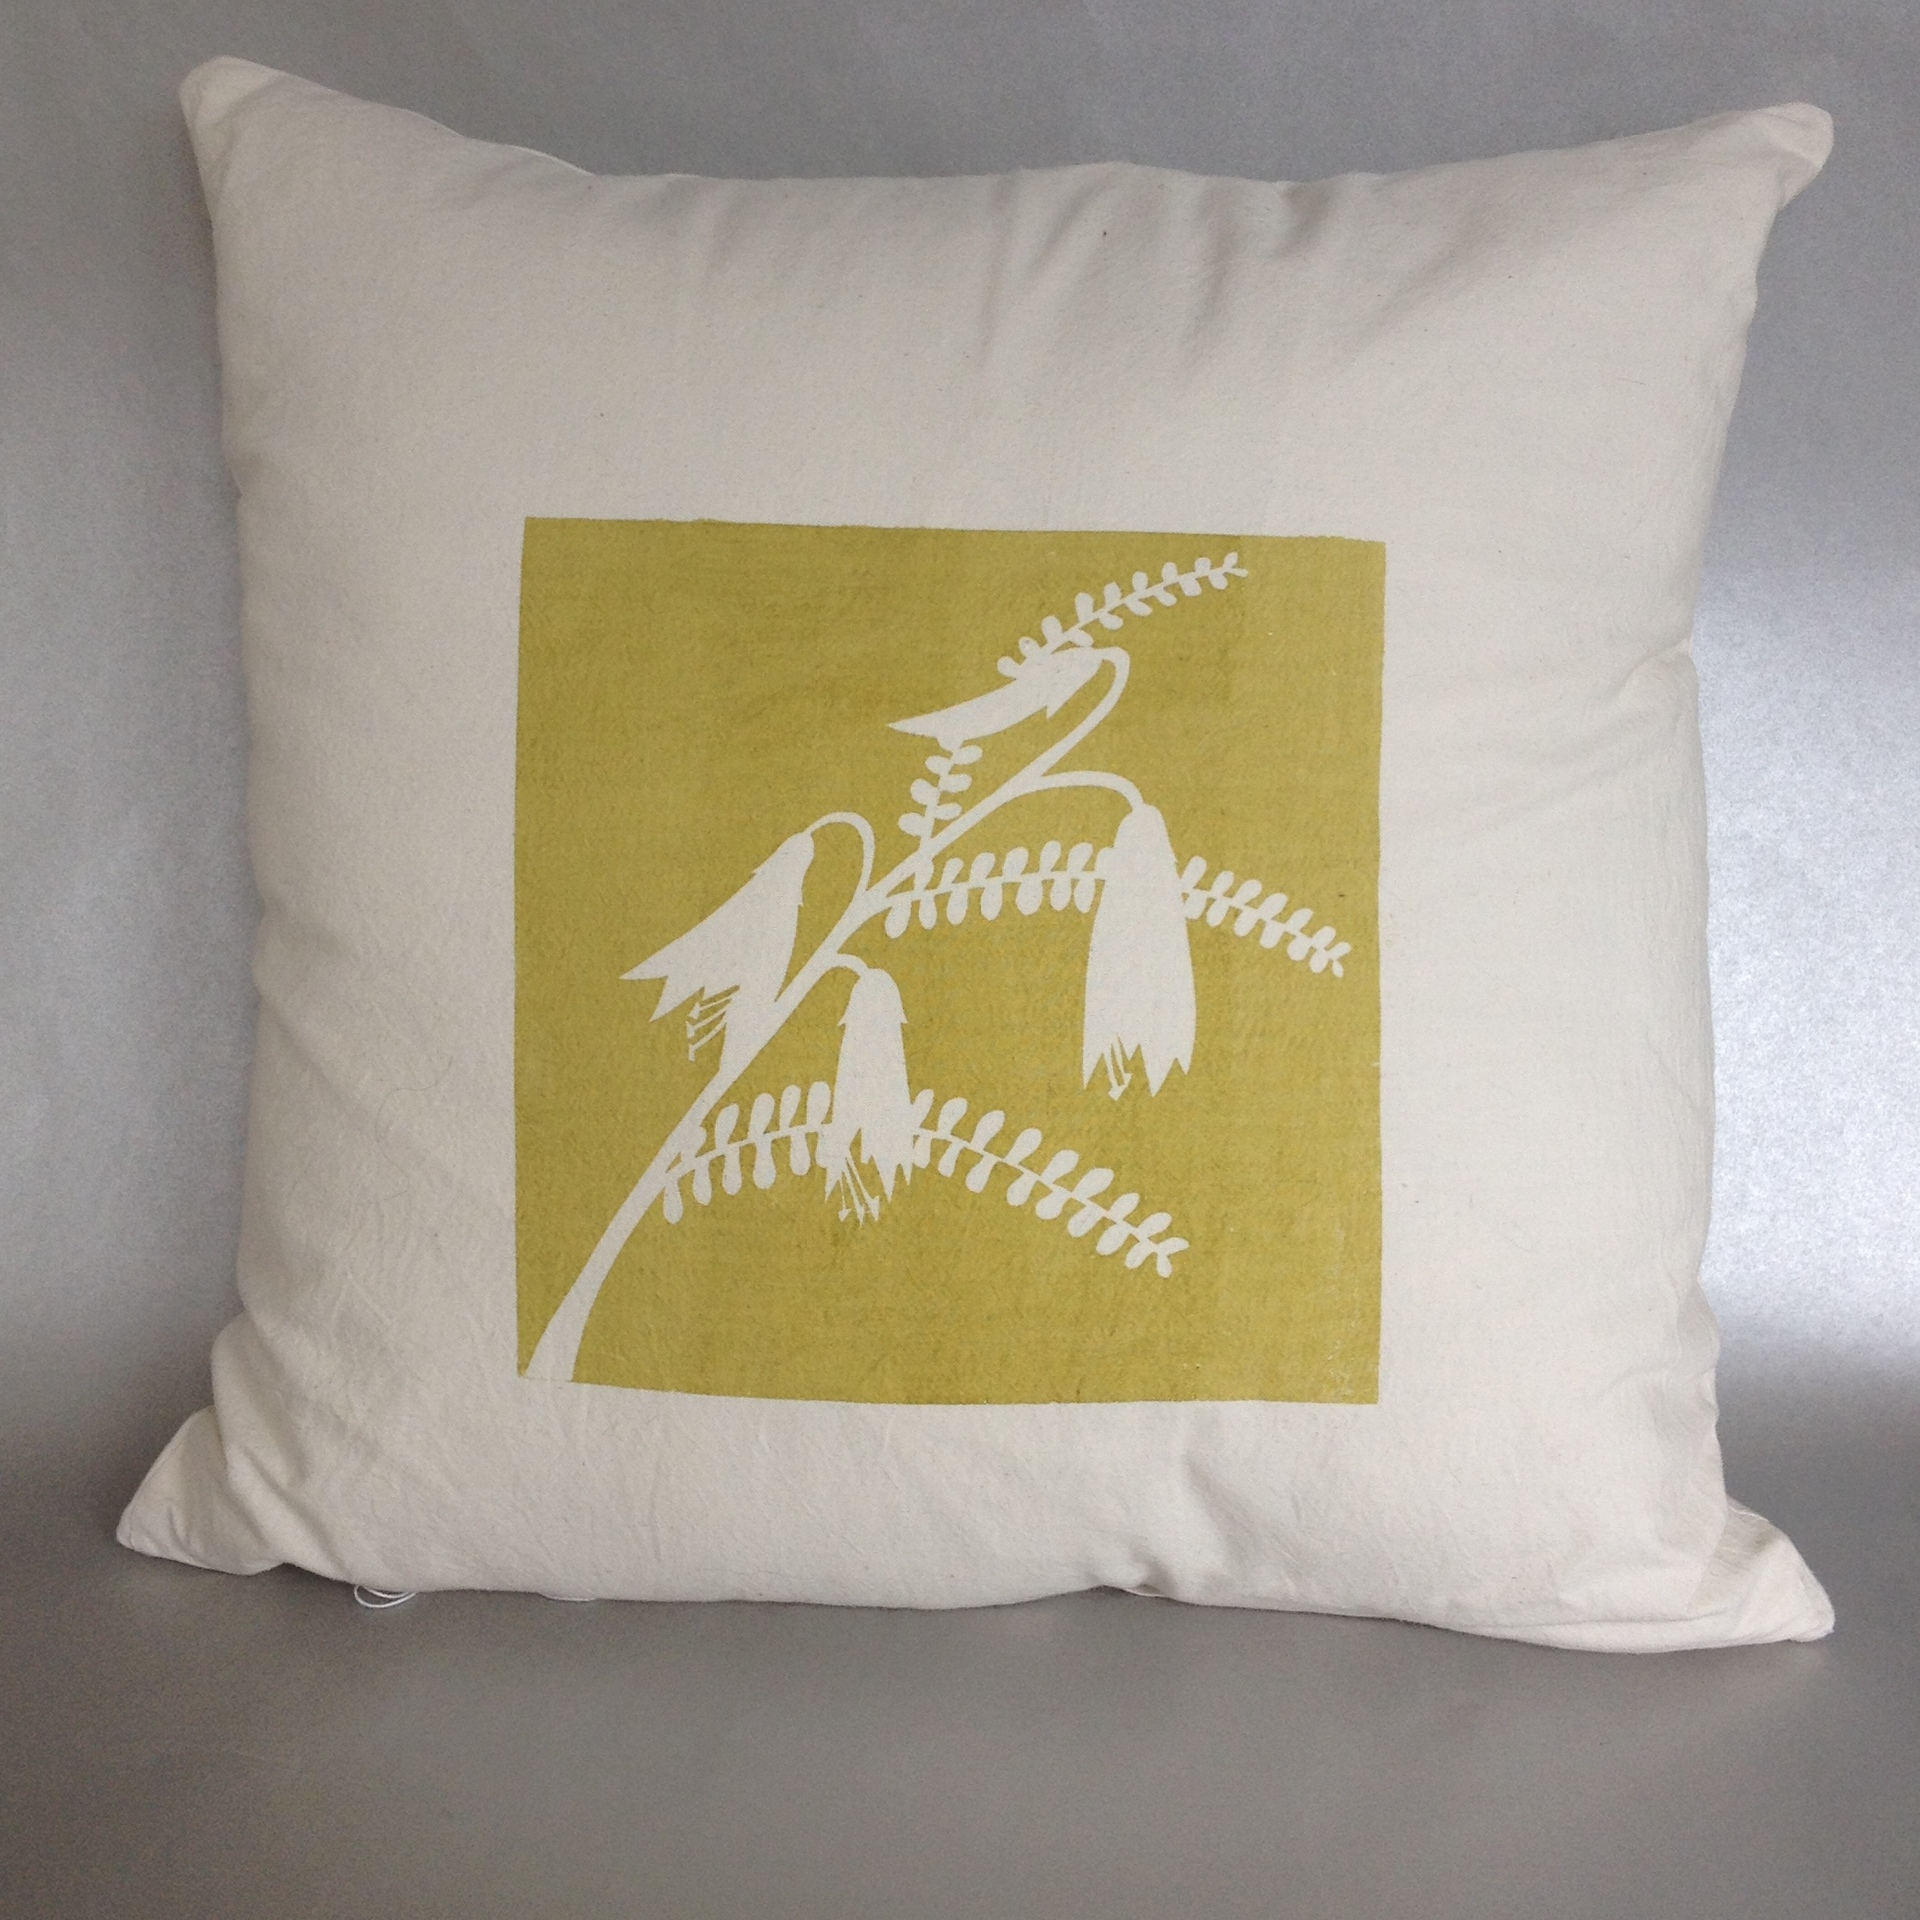 Handmade Printed Cushion Covers